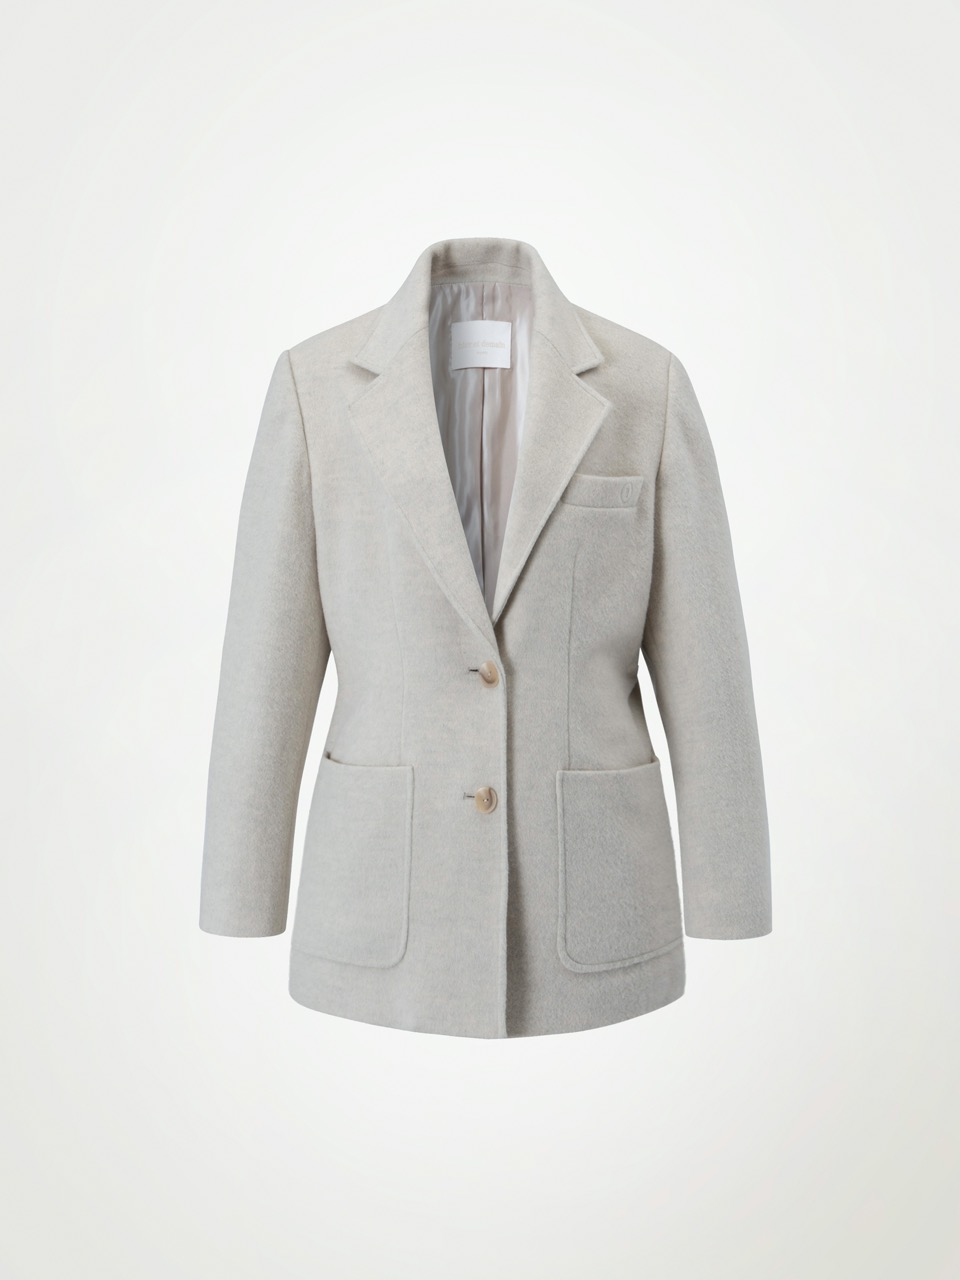 4W Premium Wool Two Button Jacket - Ivory